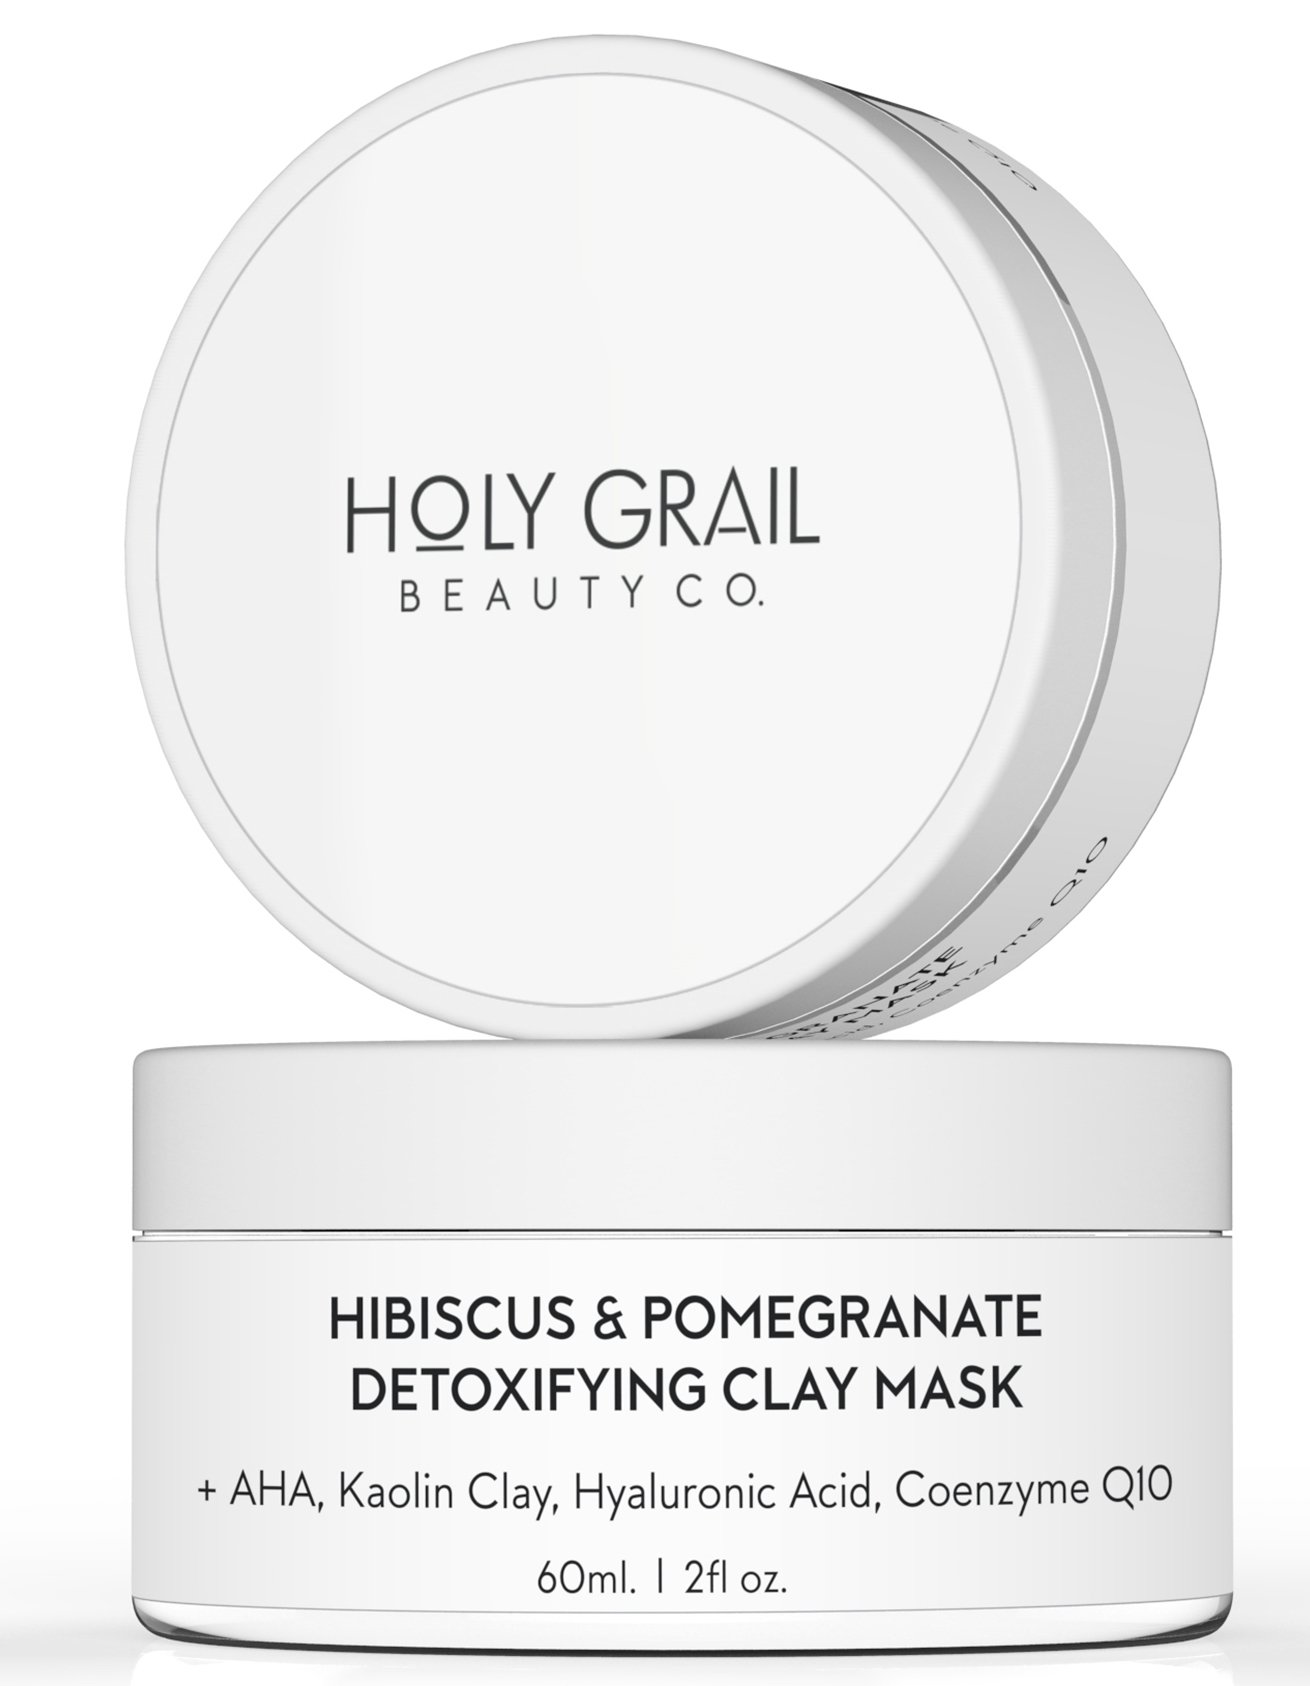 Kaolin Clay Hydrating Face Mask with Exfoliating Glycolic Acid for Blackheads, Acne & Large Pores. 70% Organic Moisturizing Face Mask by Holy Grail Beauty